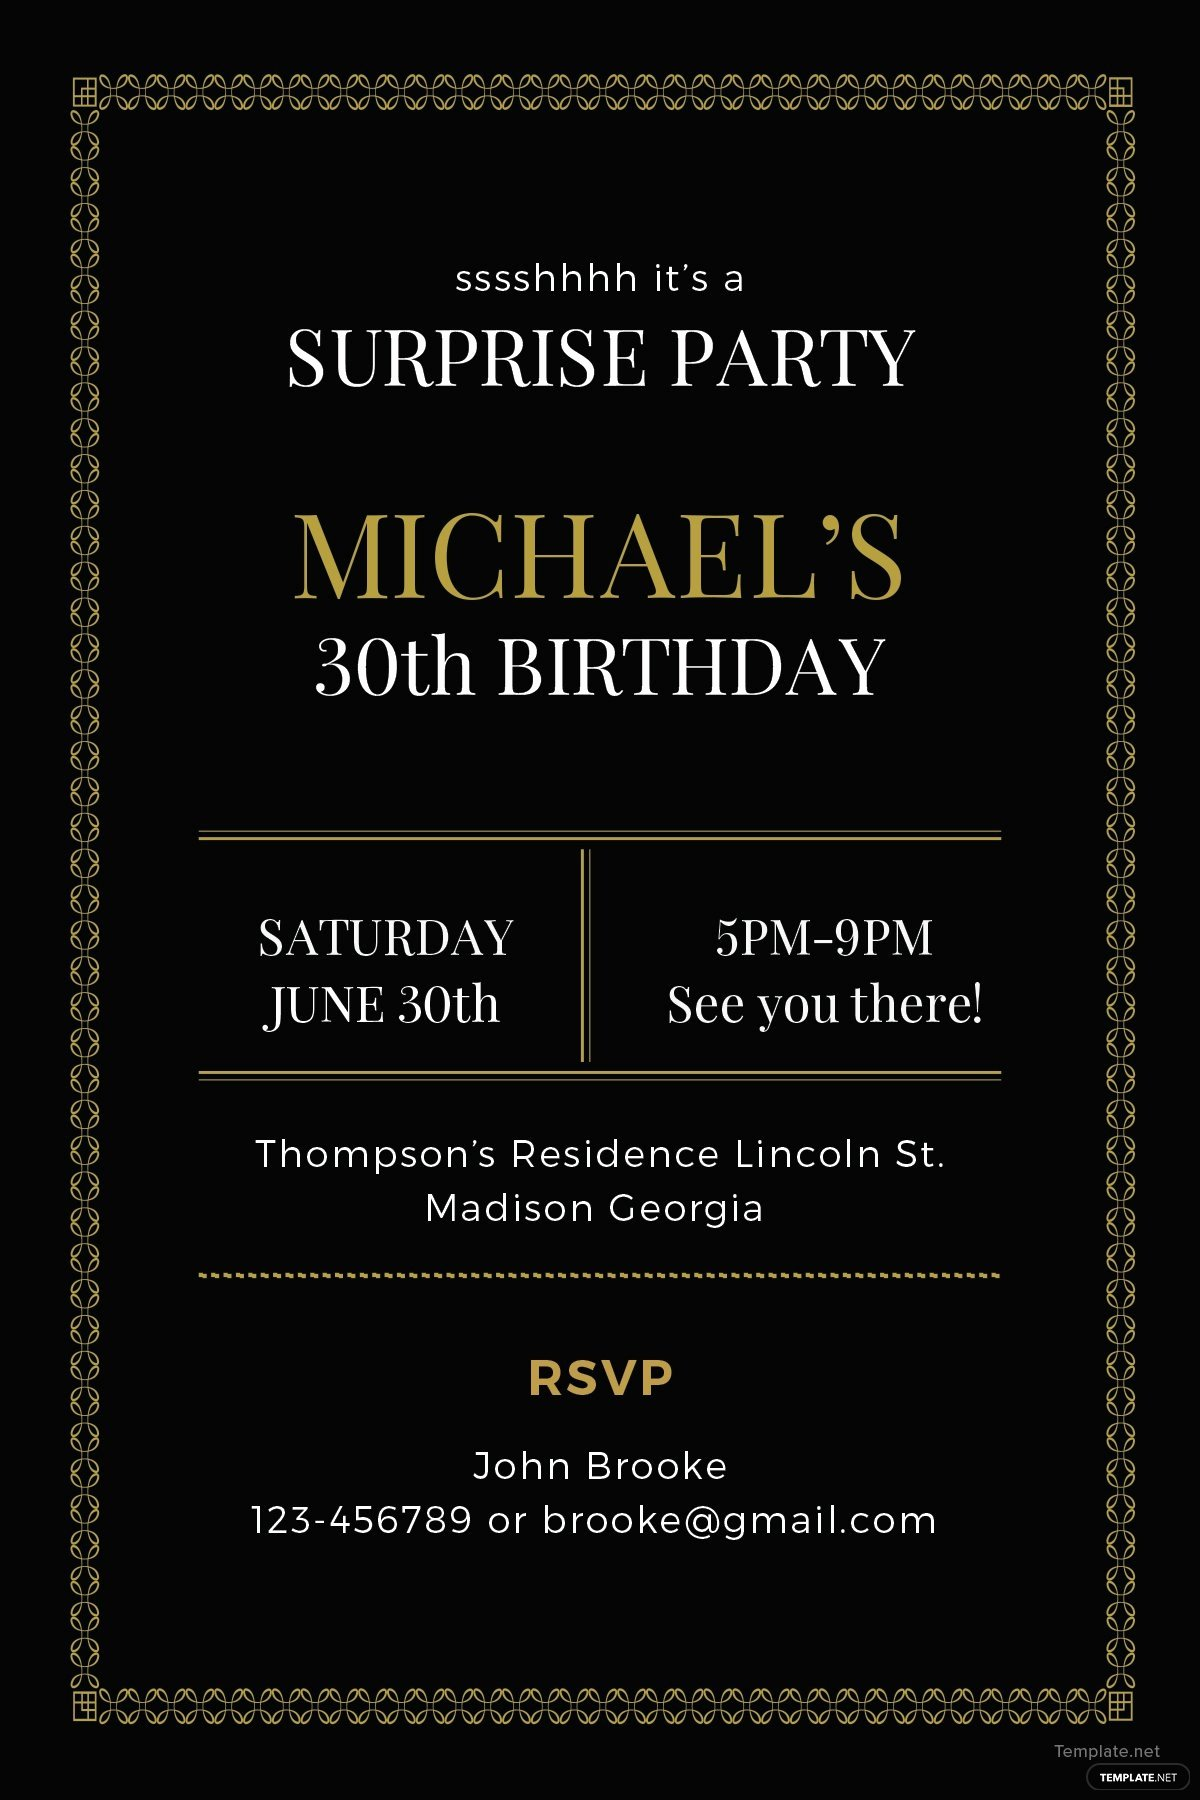 Surprise Party Invitation Template New Free Surprise Party Invitation Template In Adobe Illustrator